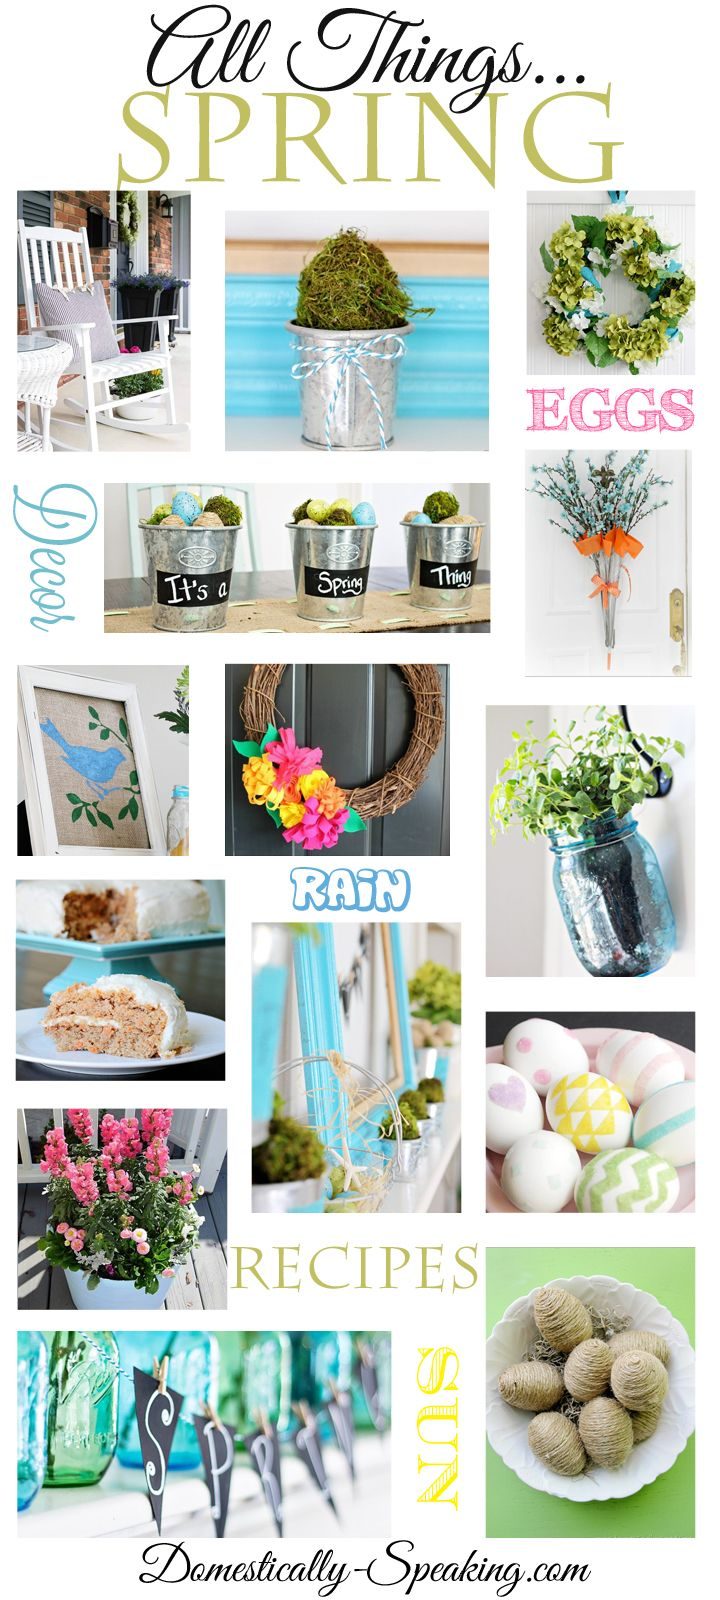 All Things Spring Over 100 Spring Recipes, Crafts, Decor and More